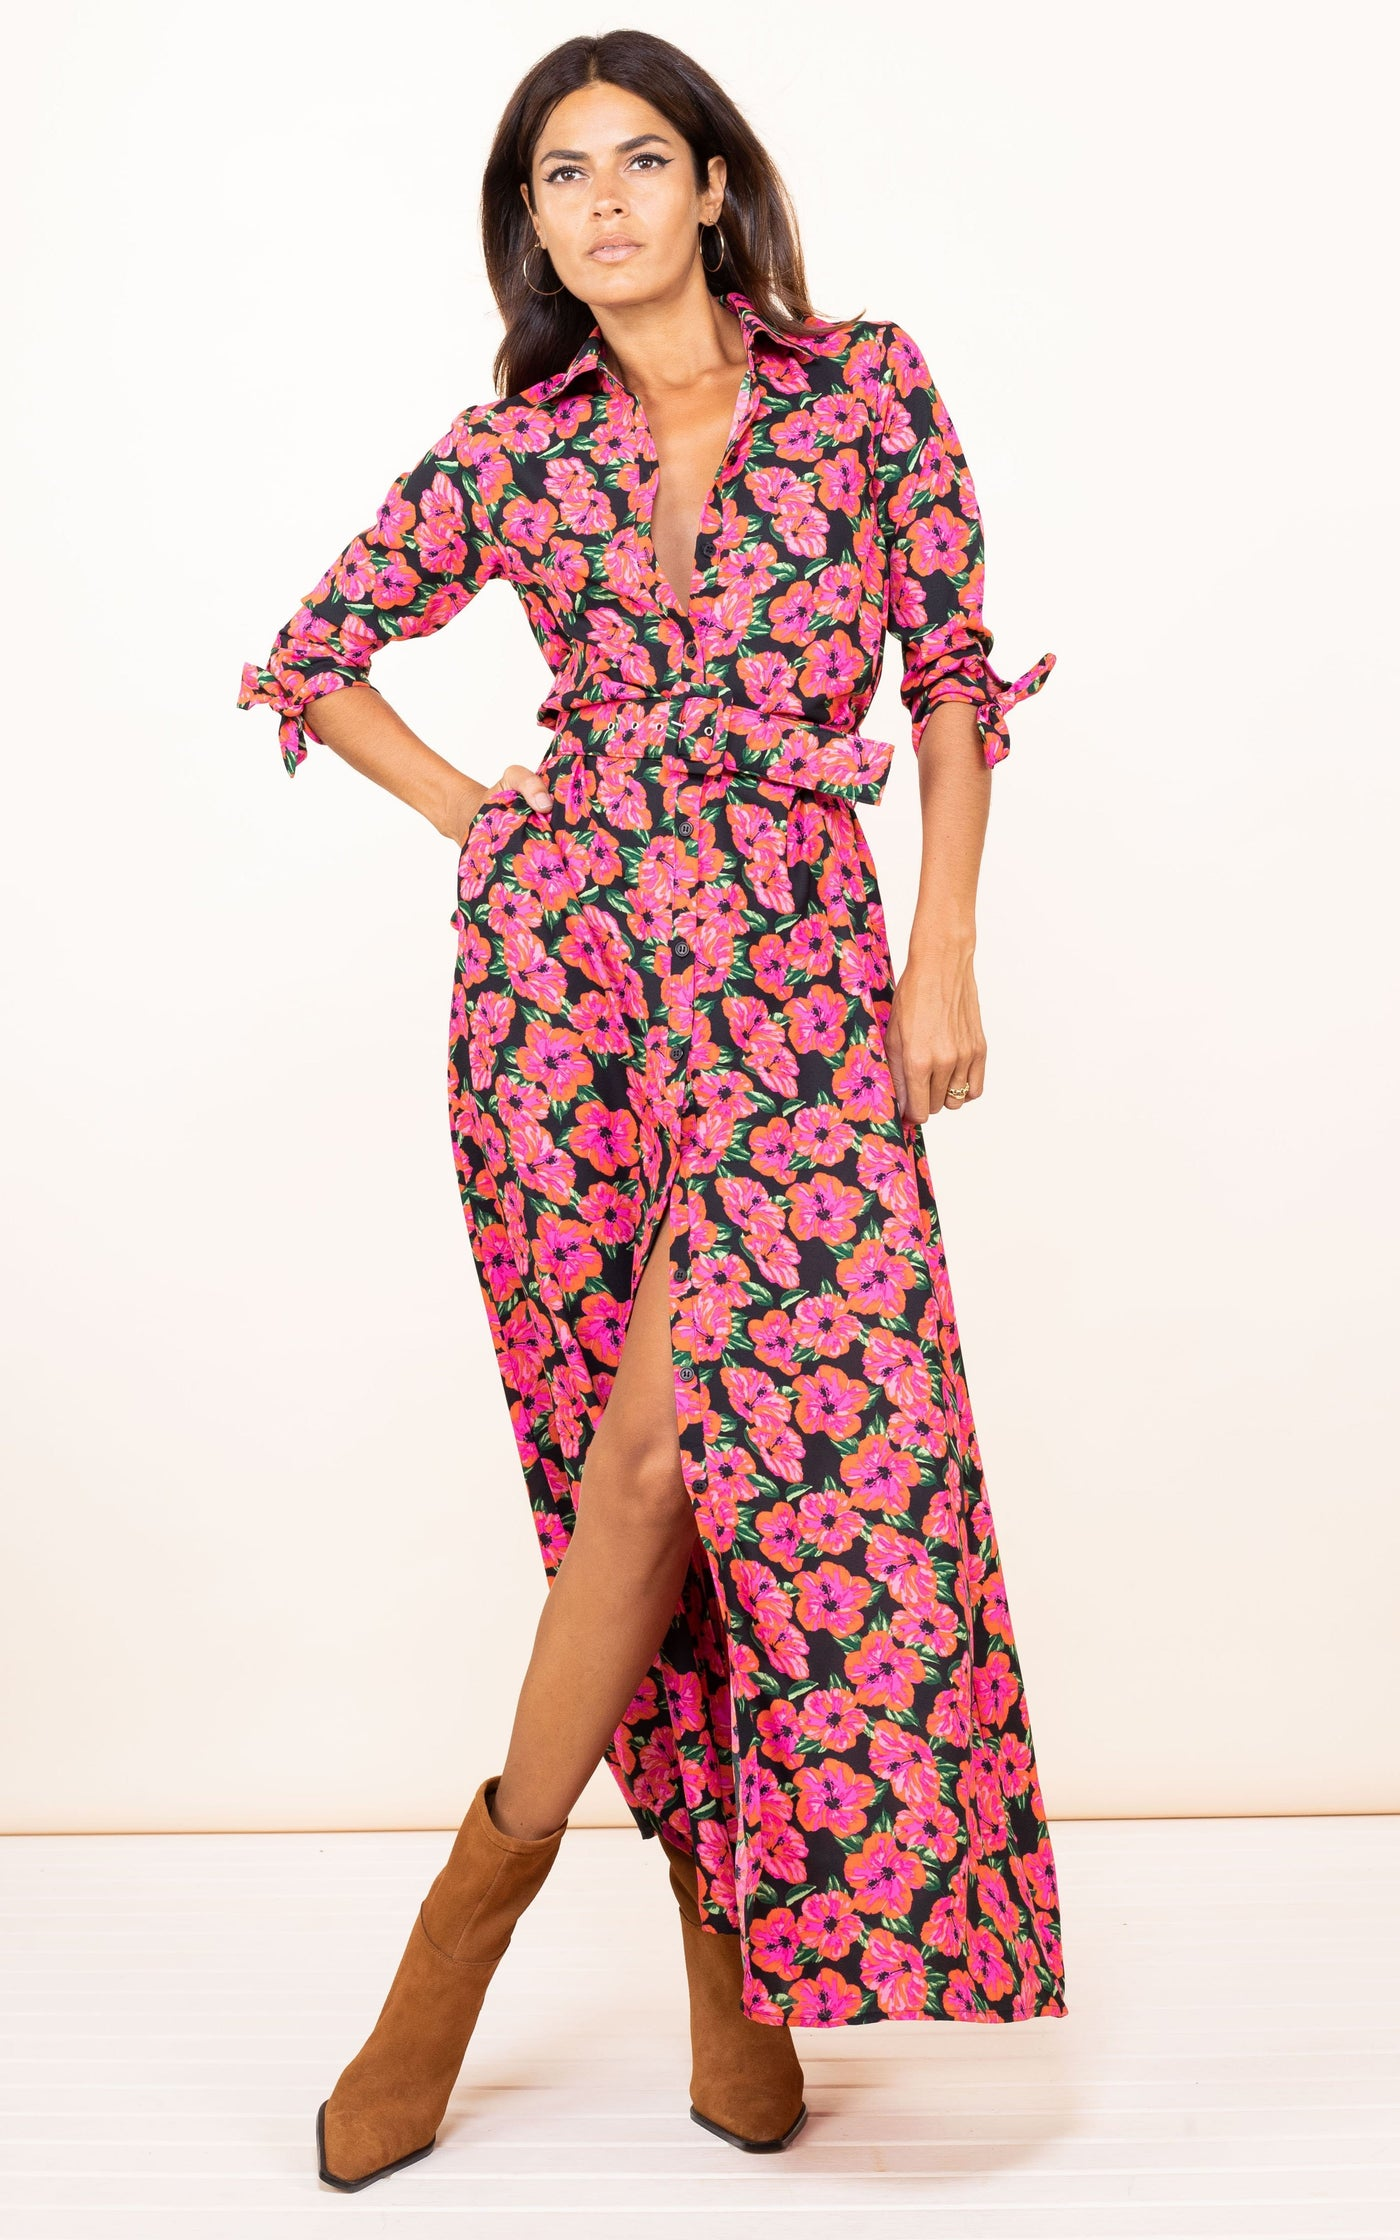 Dancing Leopard model faces forward with hand on hip wearing Dove Dress in pink on black hibiscus print